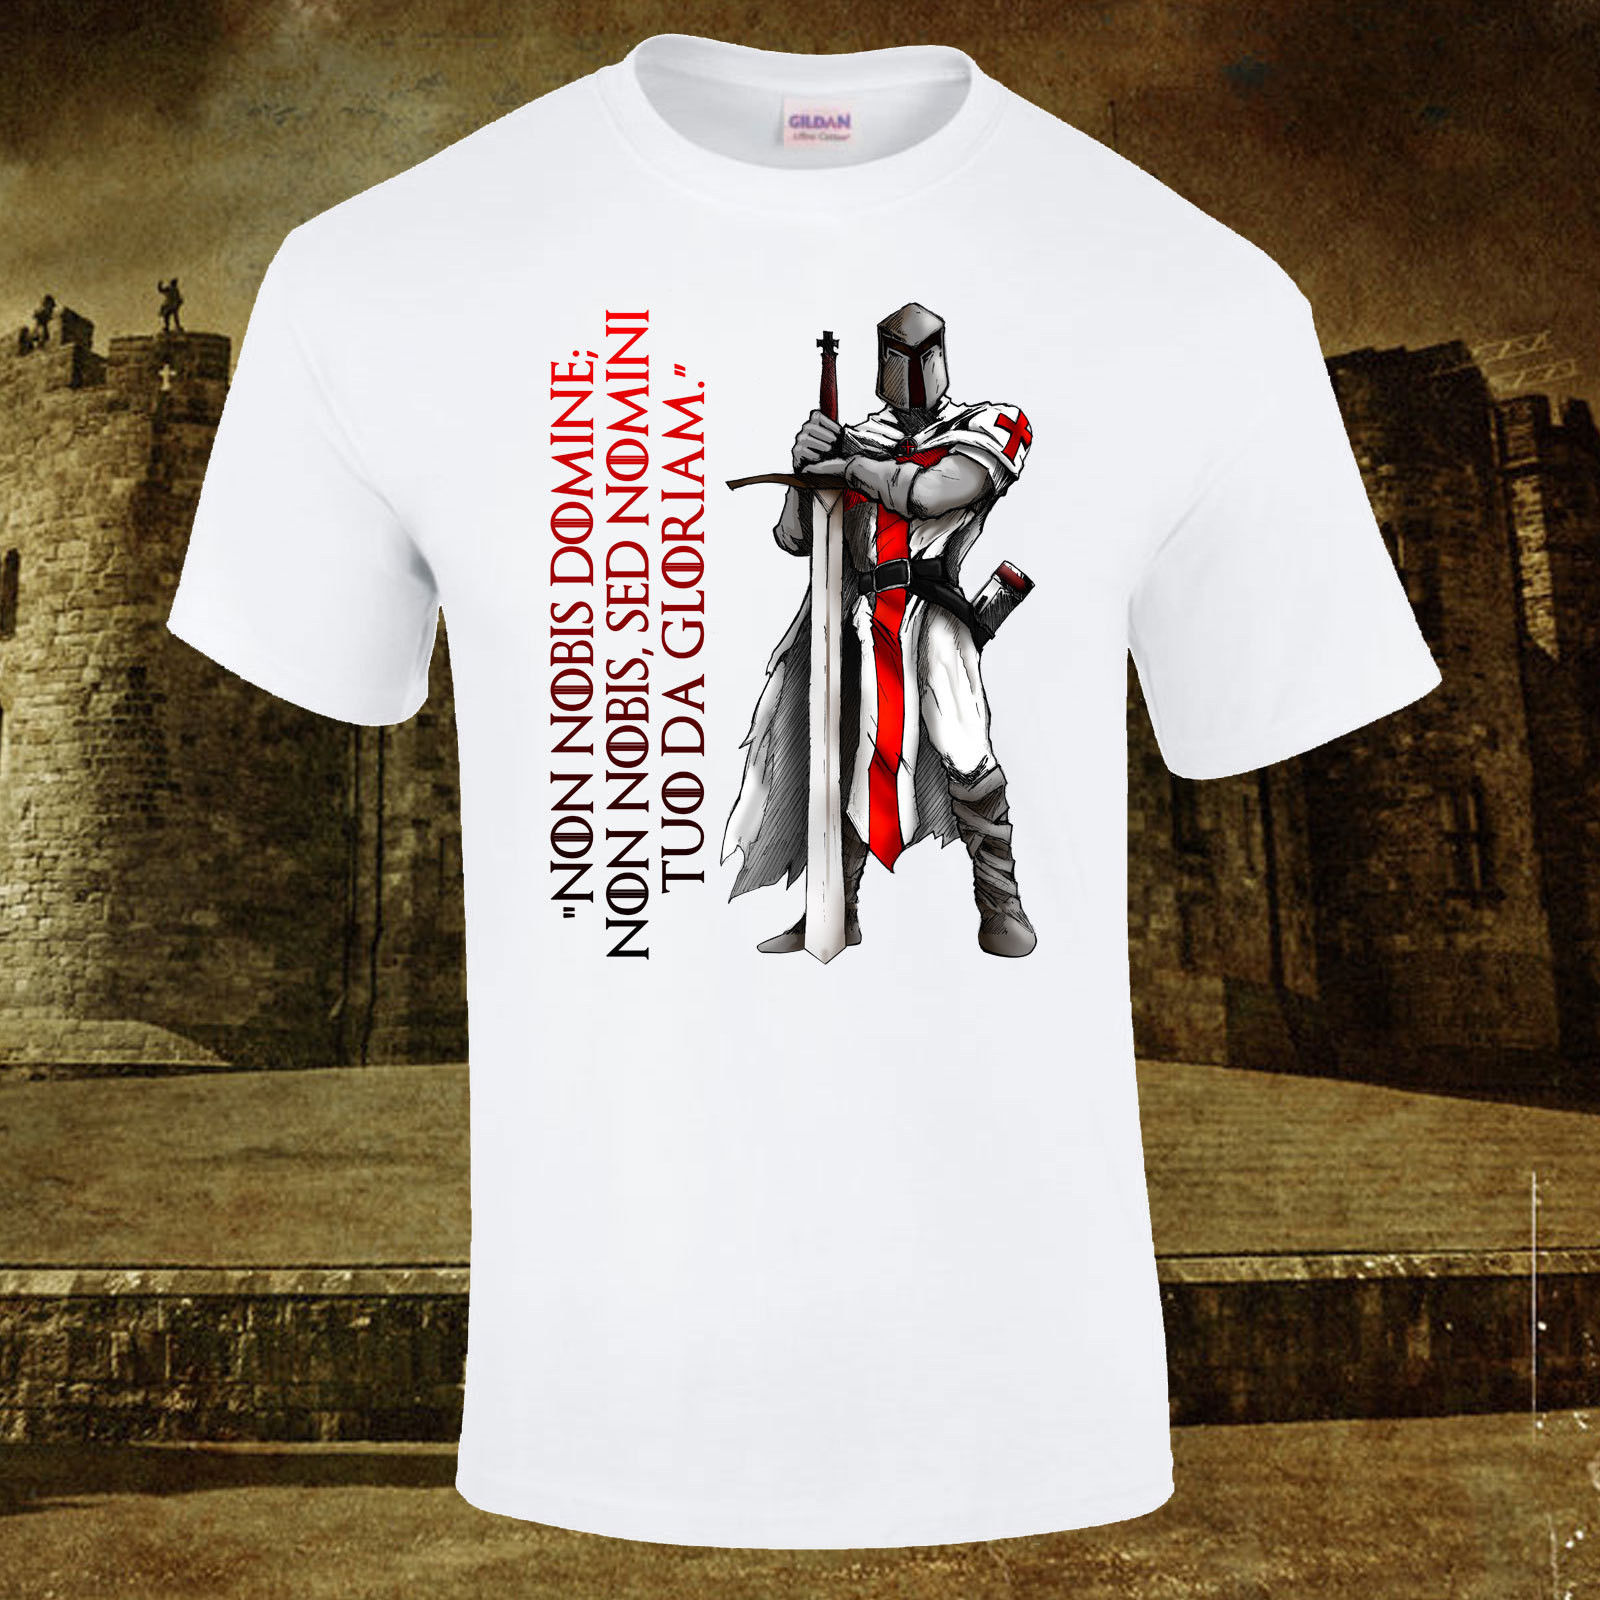 Knights Templar Crusader Teutonic Creed Gift Premium Quality DTG T-Shirt S-5XL New T Shirts Funny Tops Tee New Unisex Funny Tops